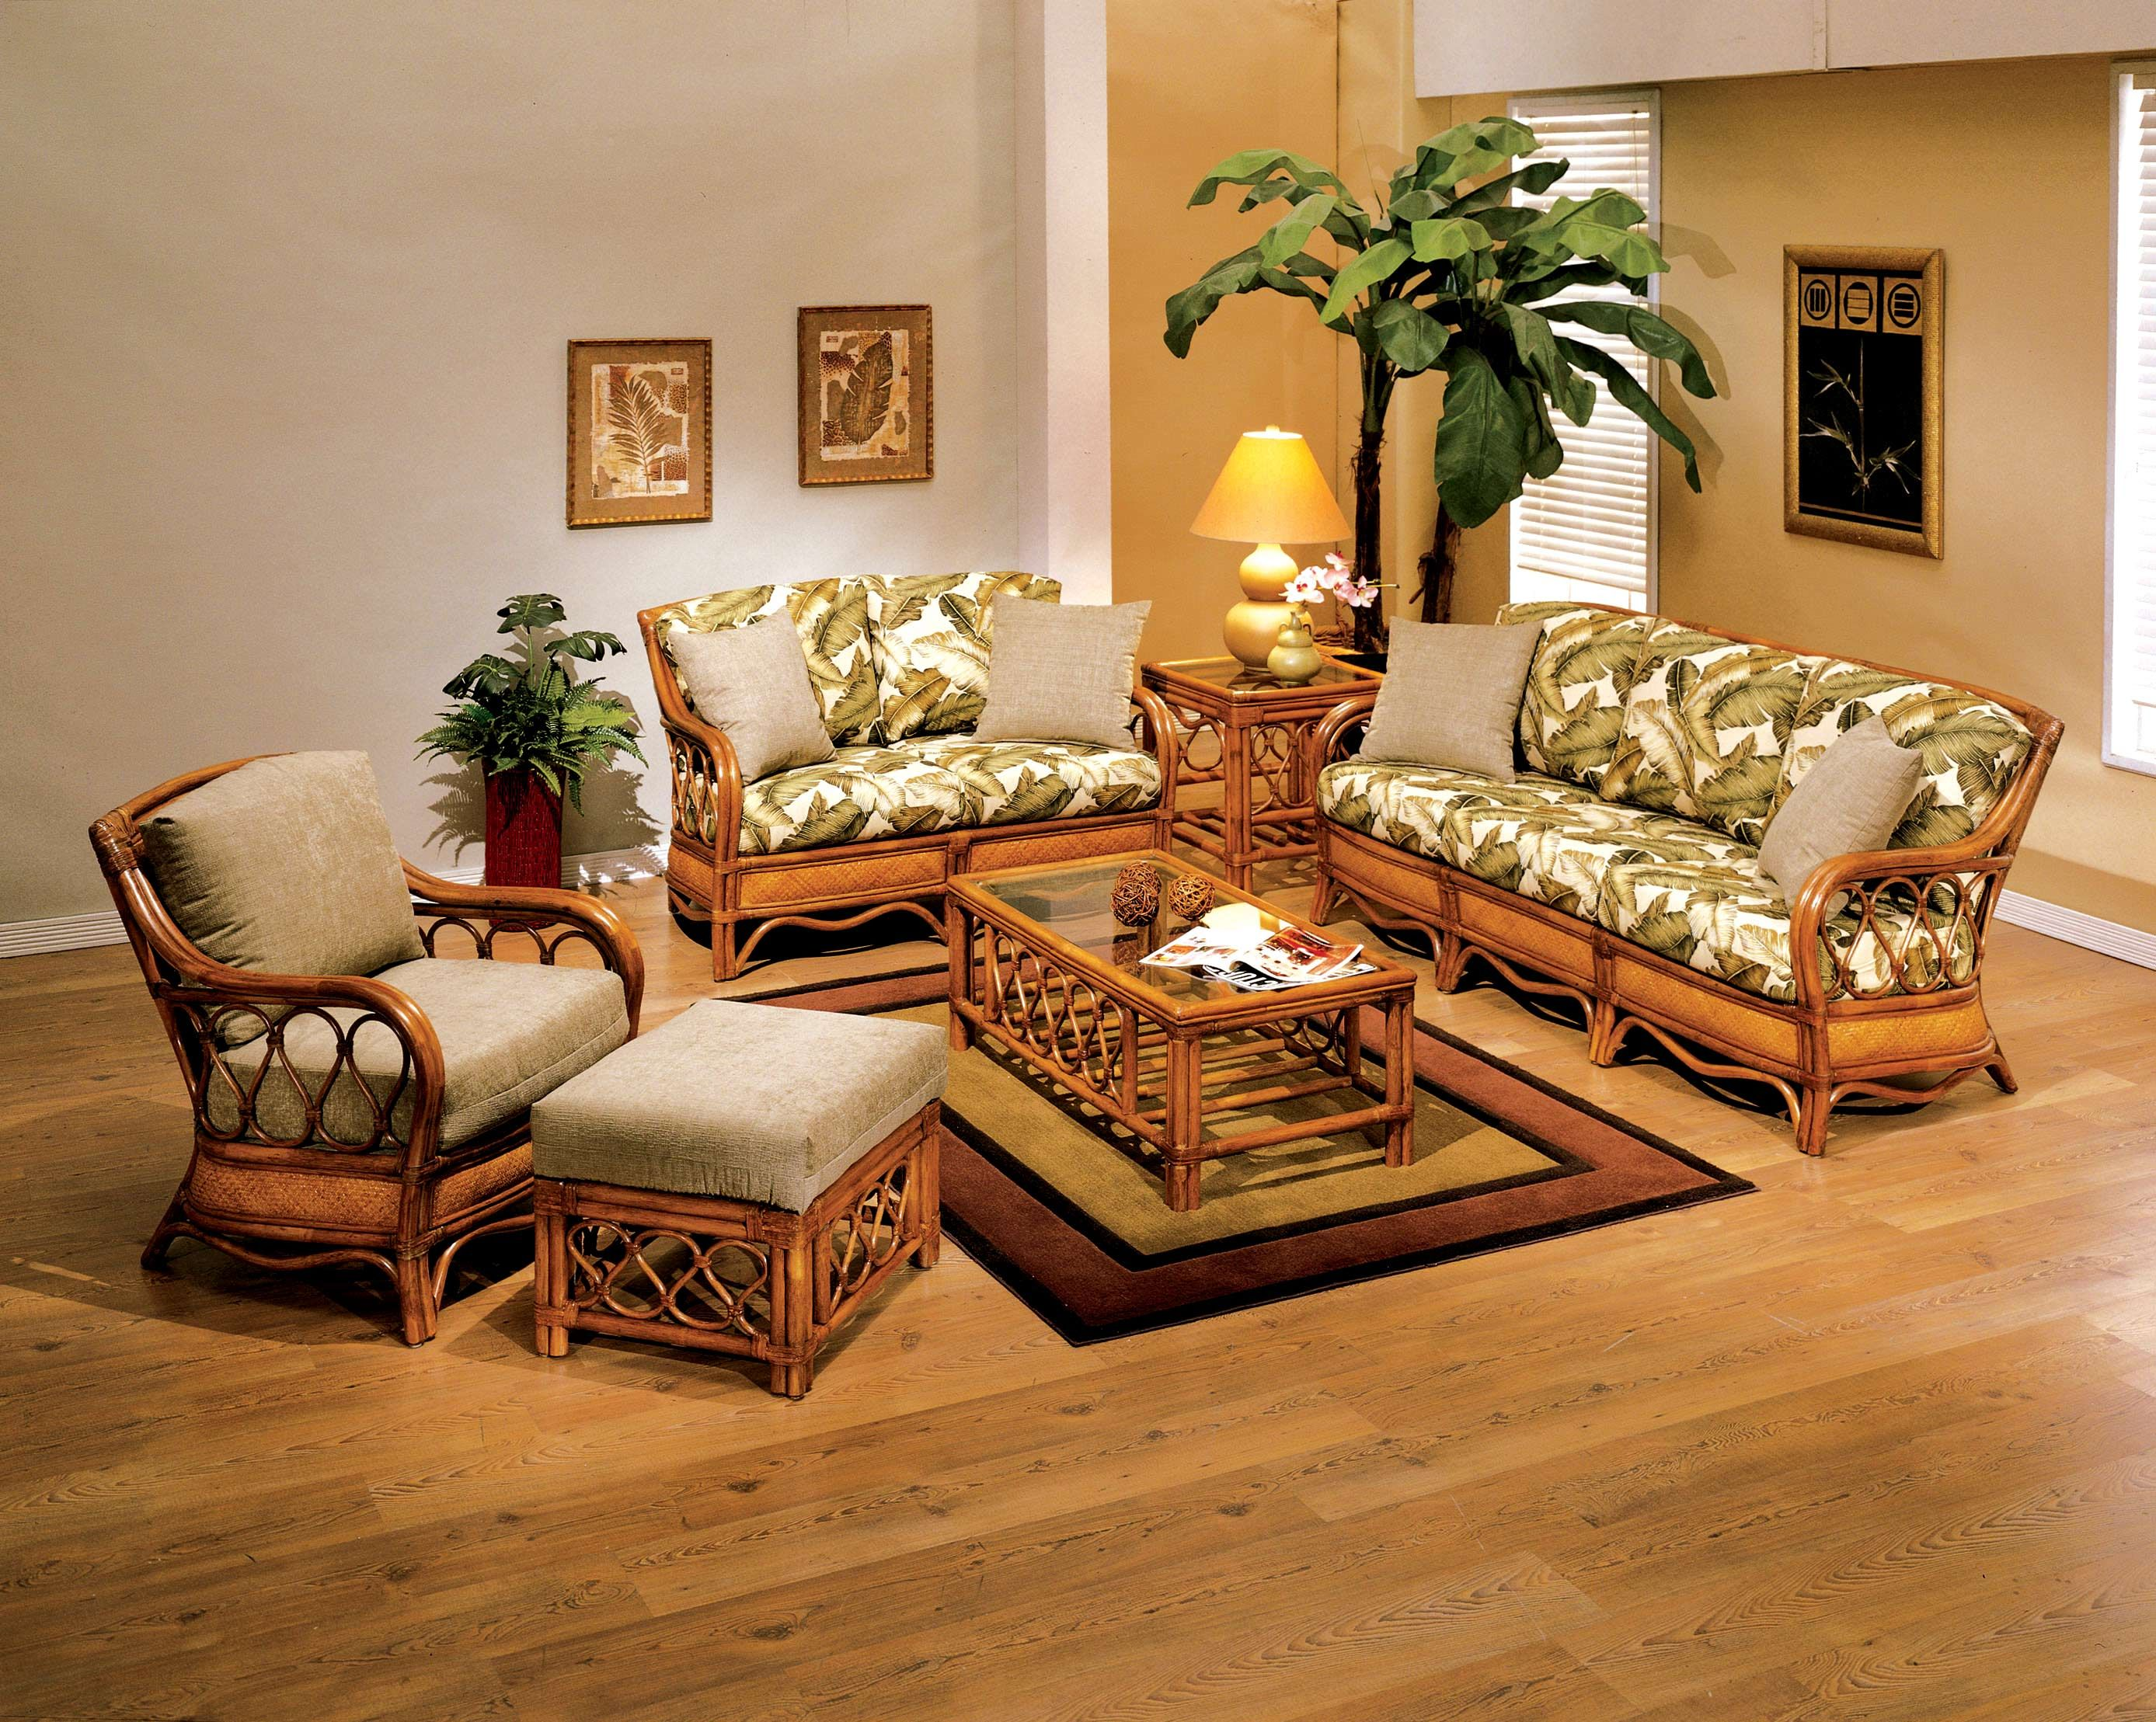 Rattan, Wicker, Bamboo Chairs | Rattan Living Room Furniture Gallery 1